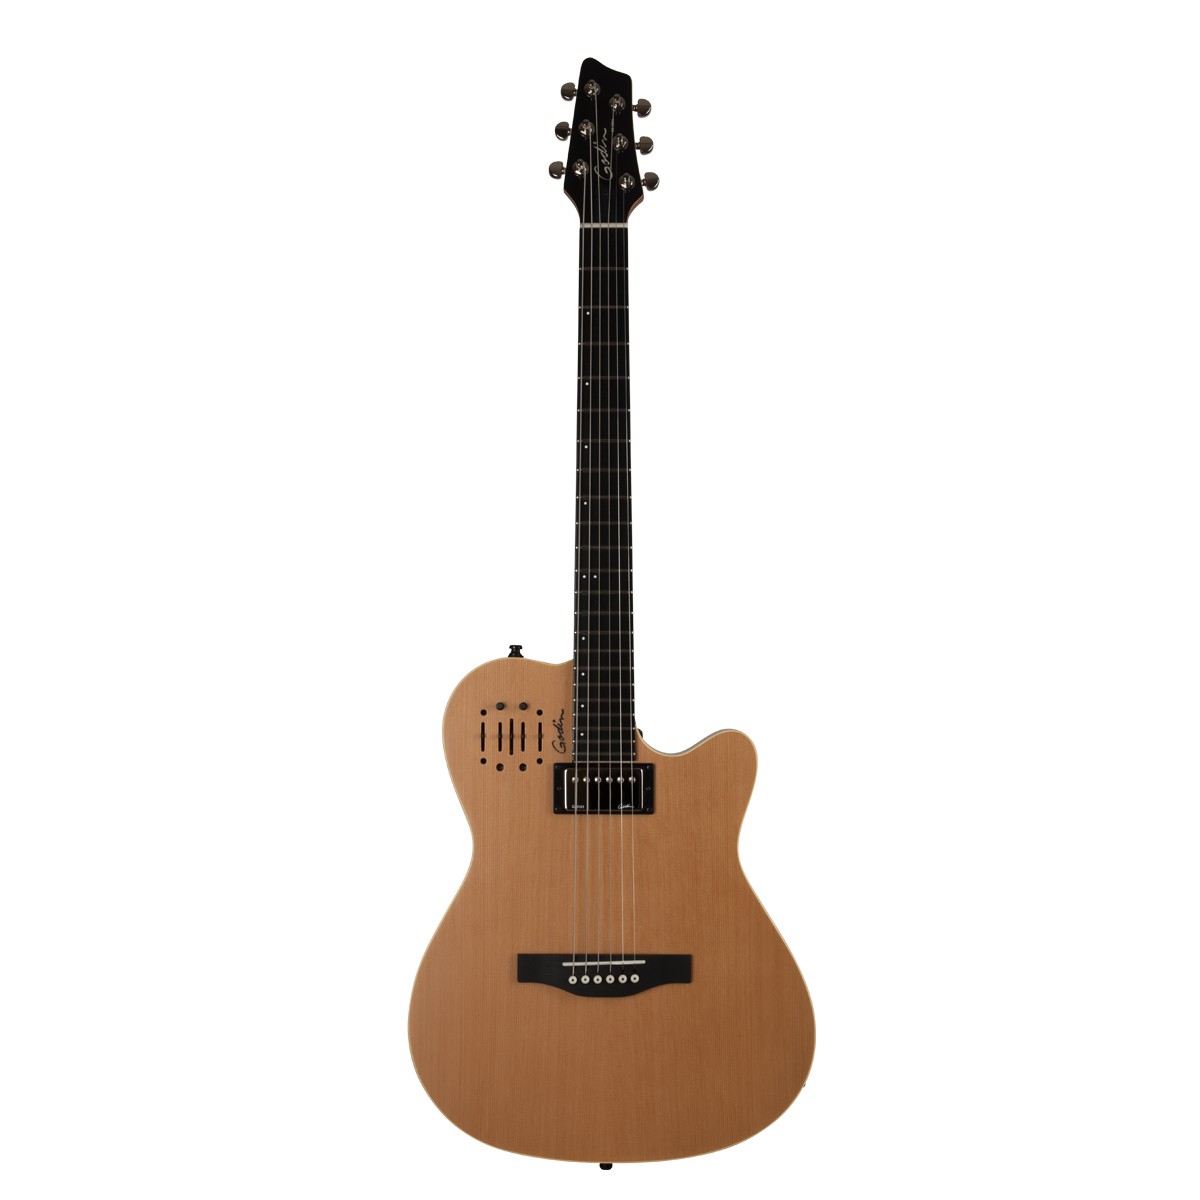 Godin A6 ULTRA Natural SG SKU: 030293